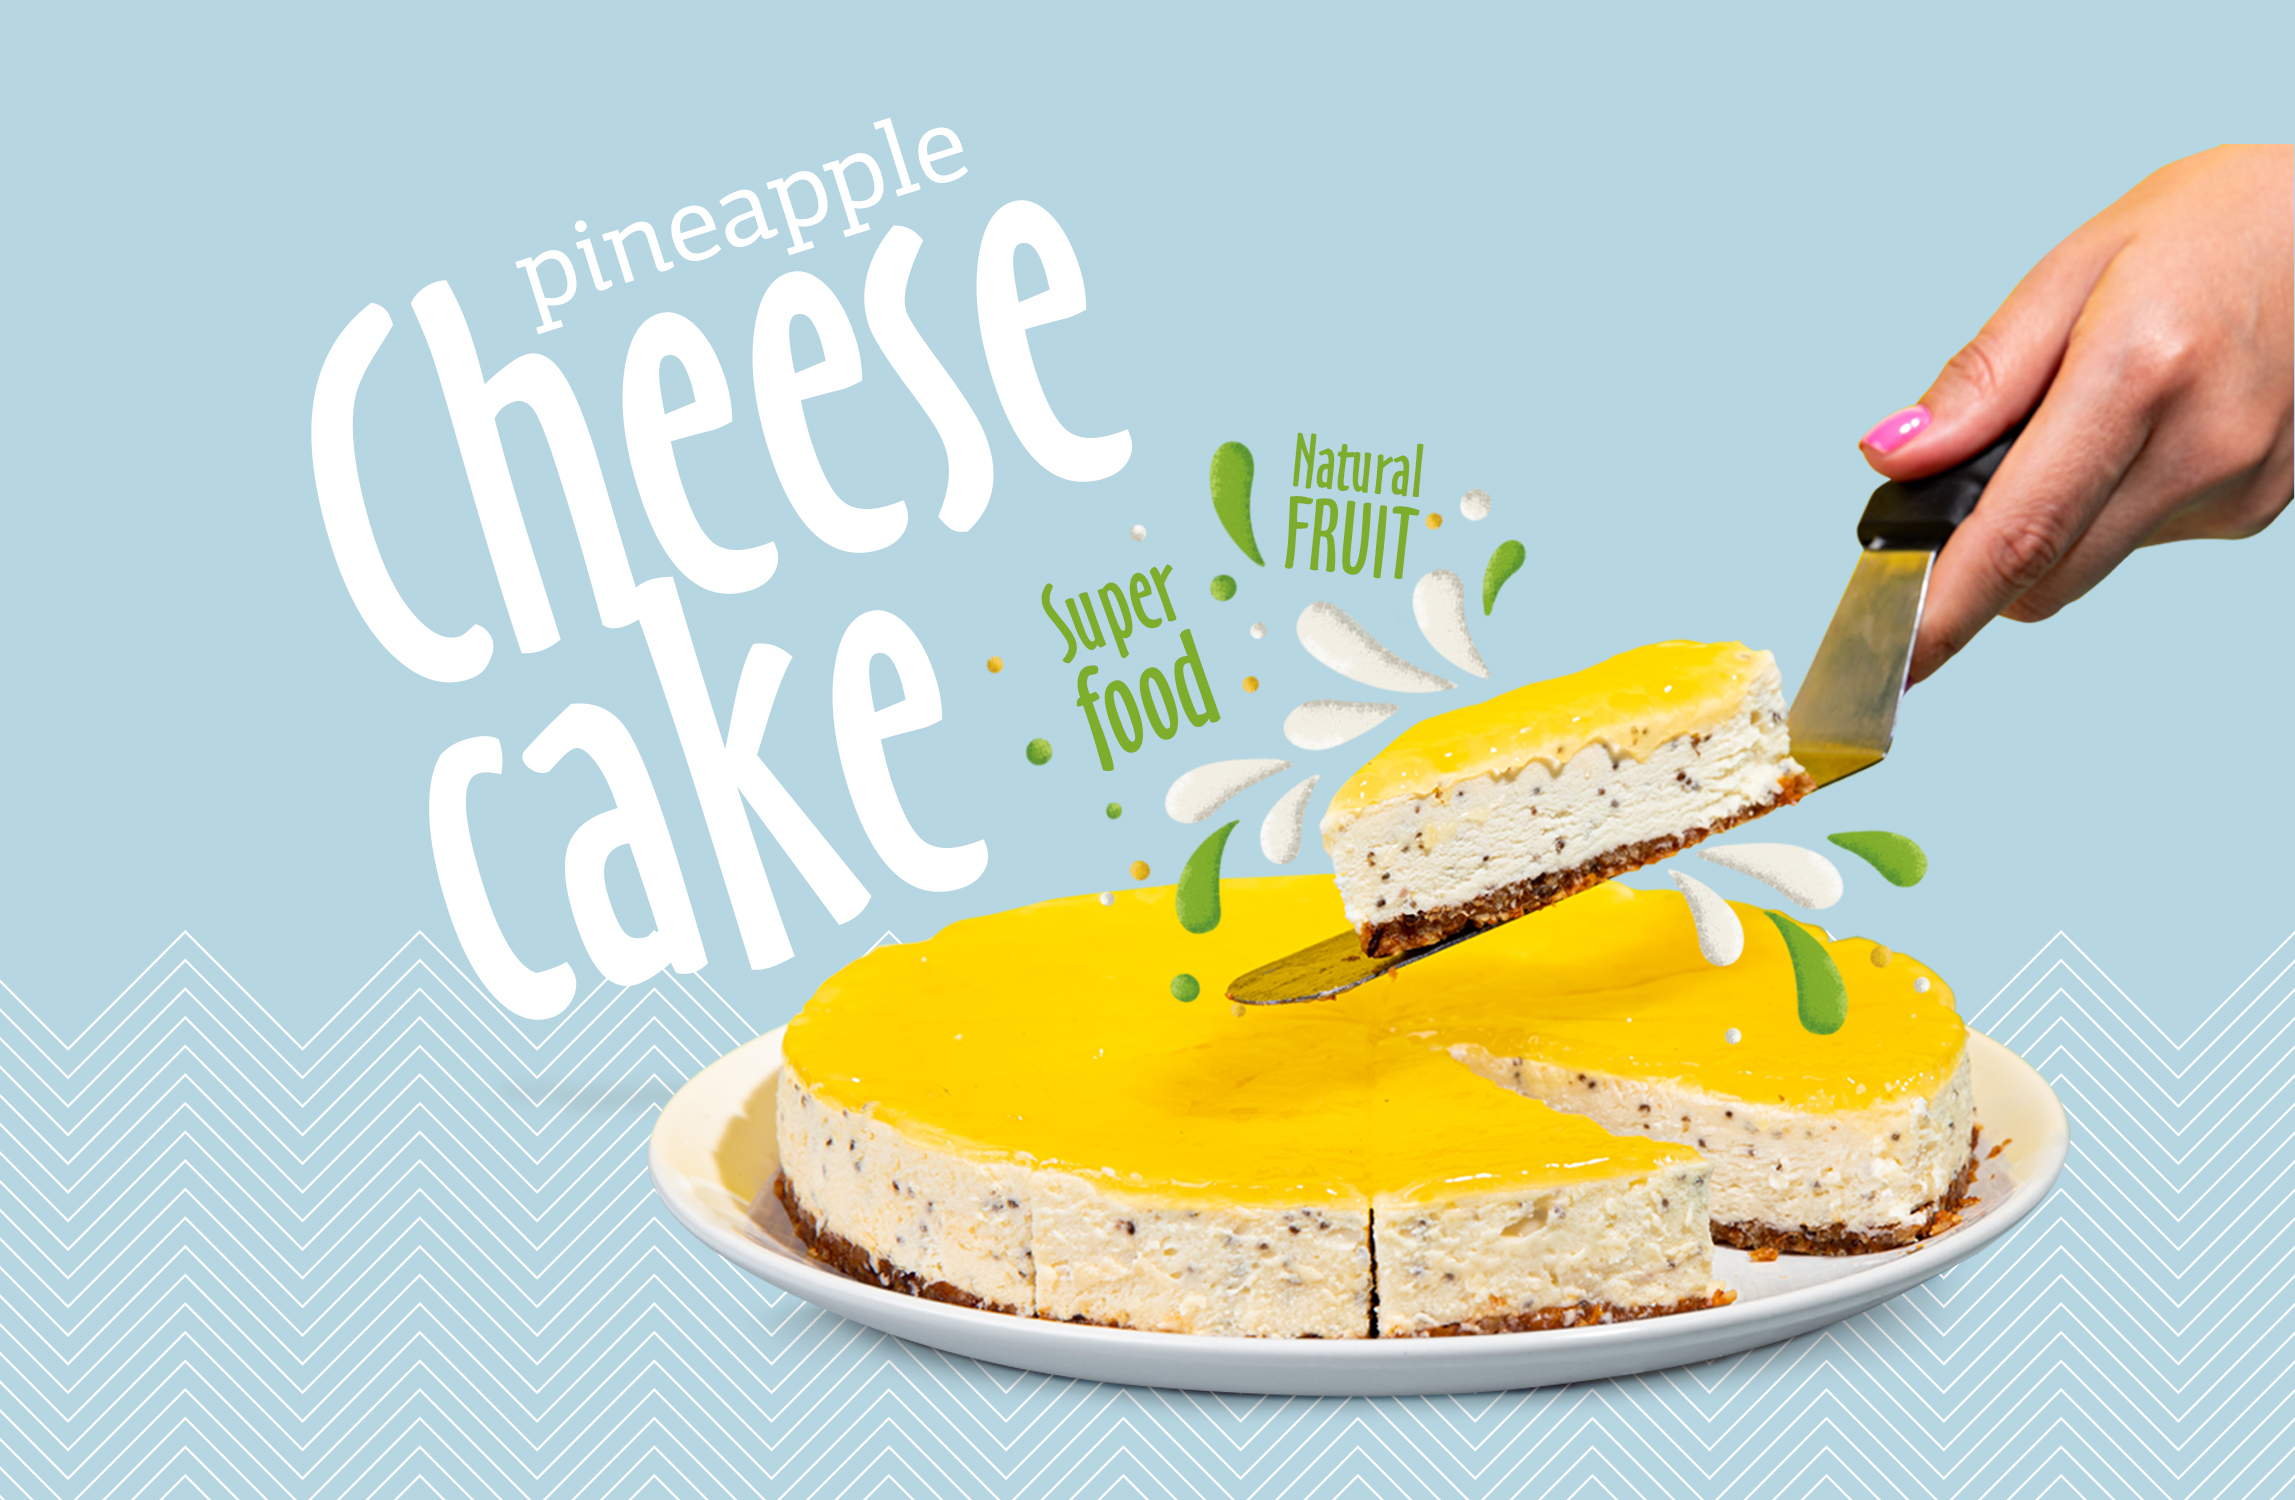 Design Department Create the Consept of Natural Cheesecakes